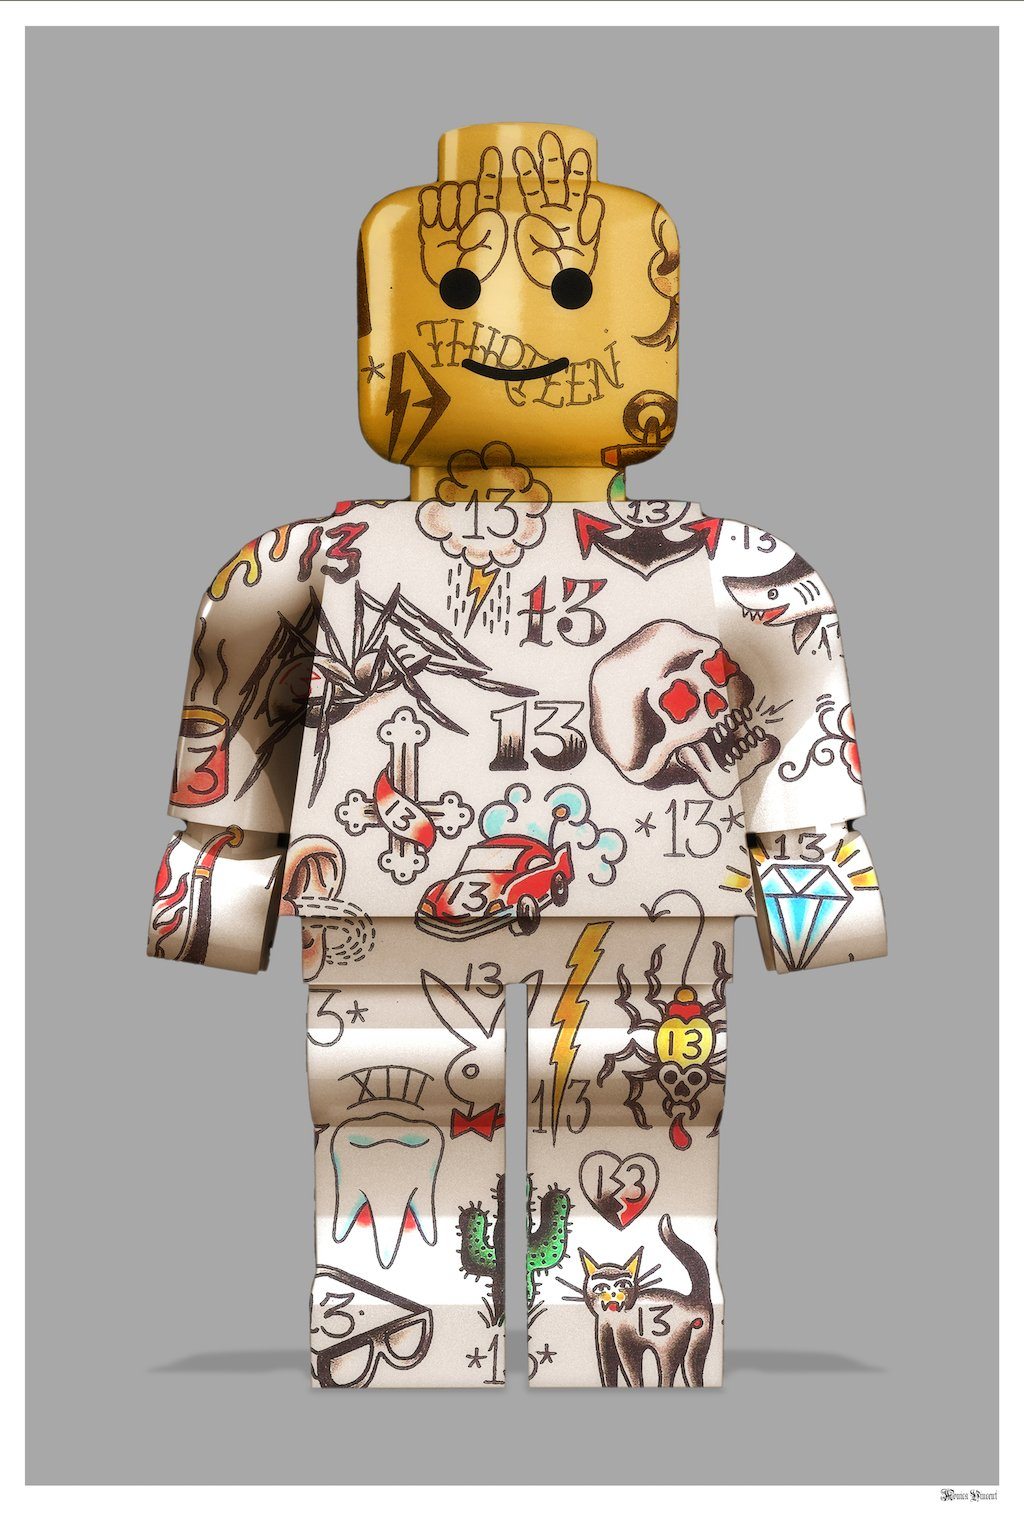 Graffiti Lego Man (Grey Background) - Large - Framed by Monica Vincent